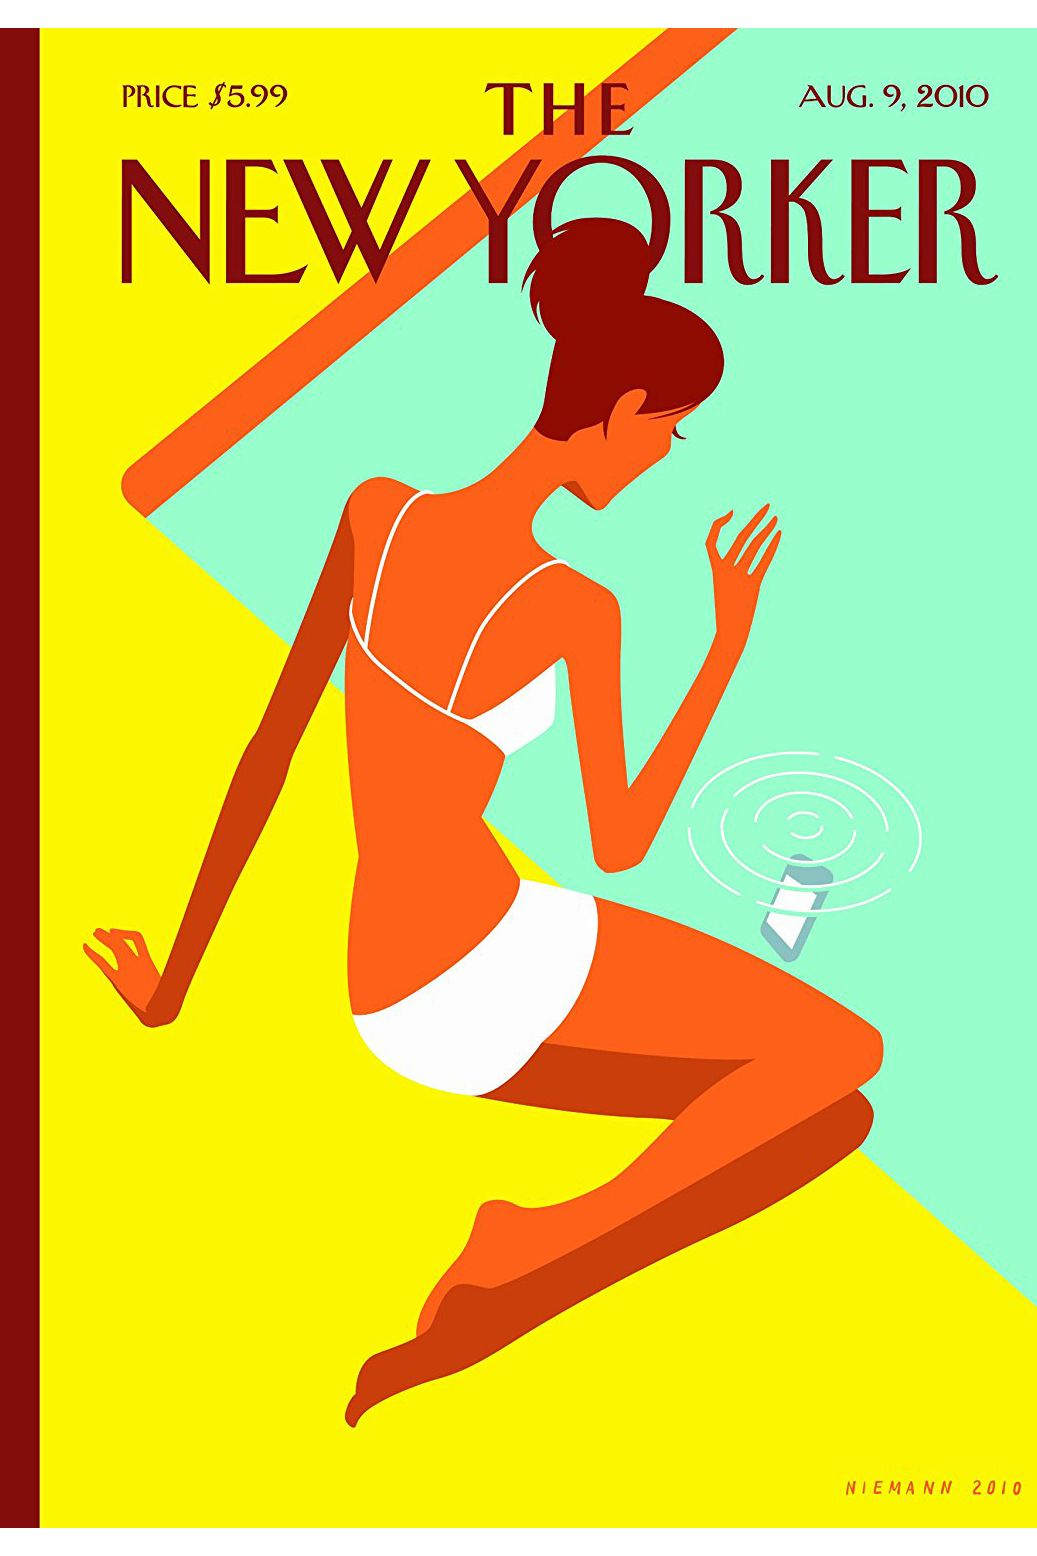 The New Yorker Print Magazine, 1-Year Subscription